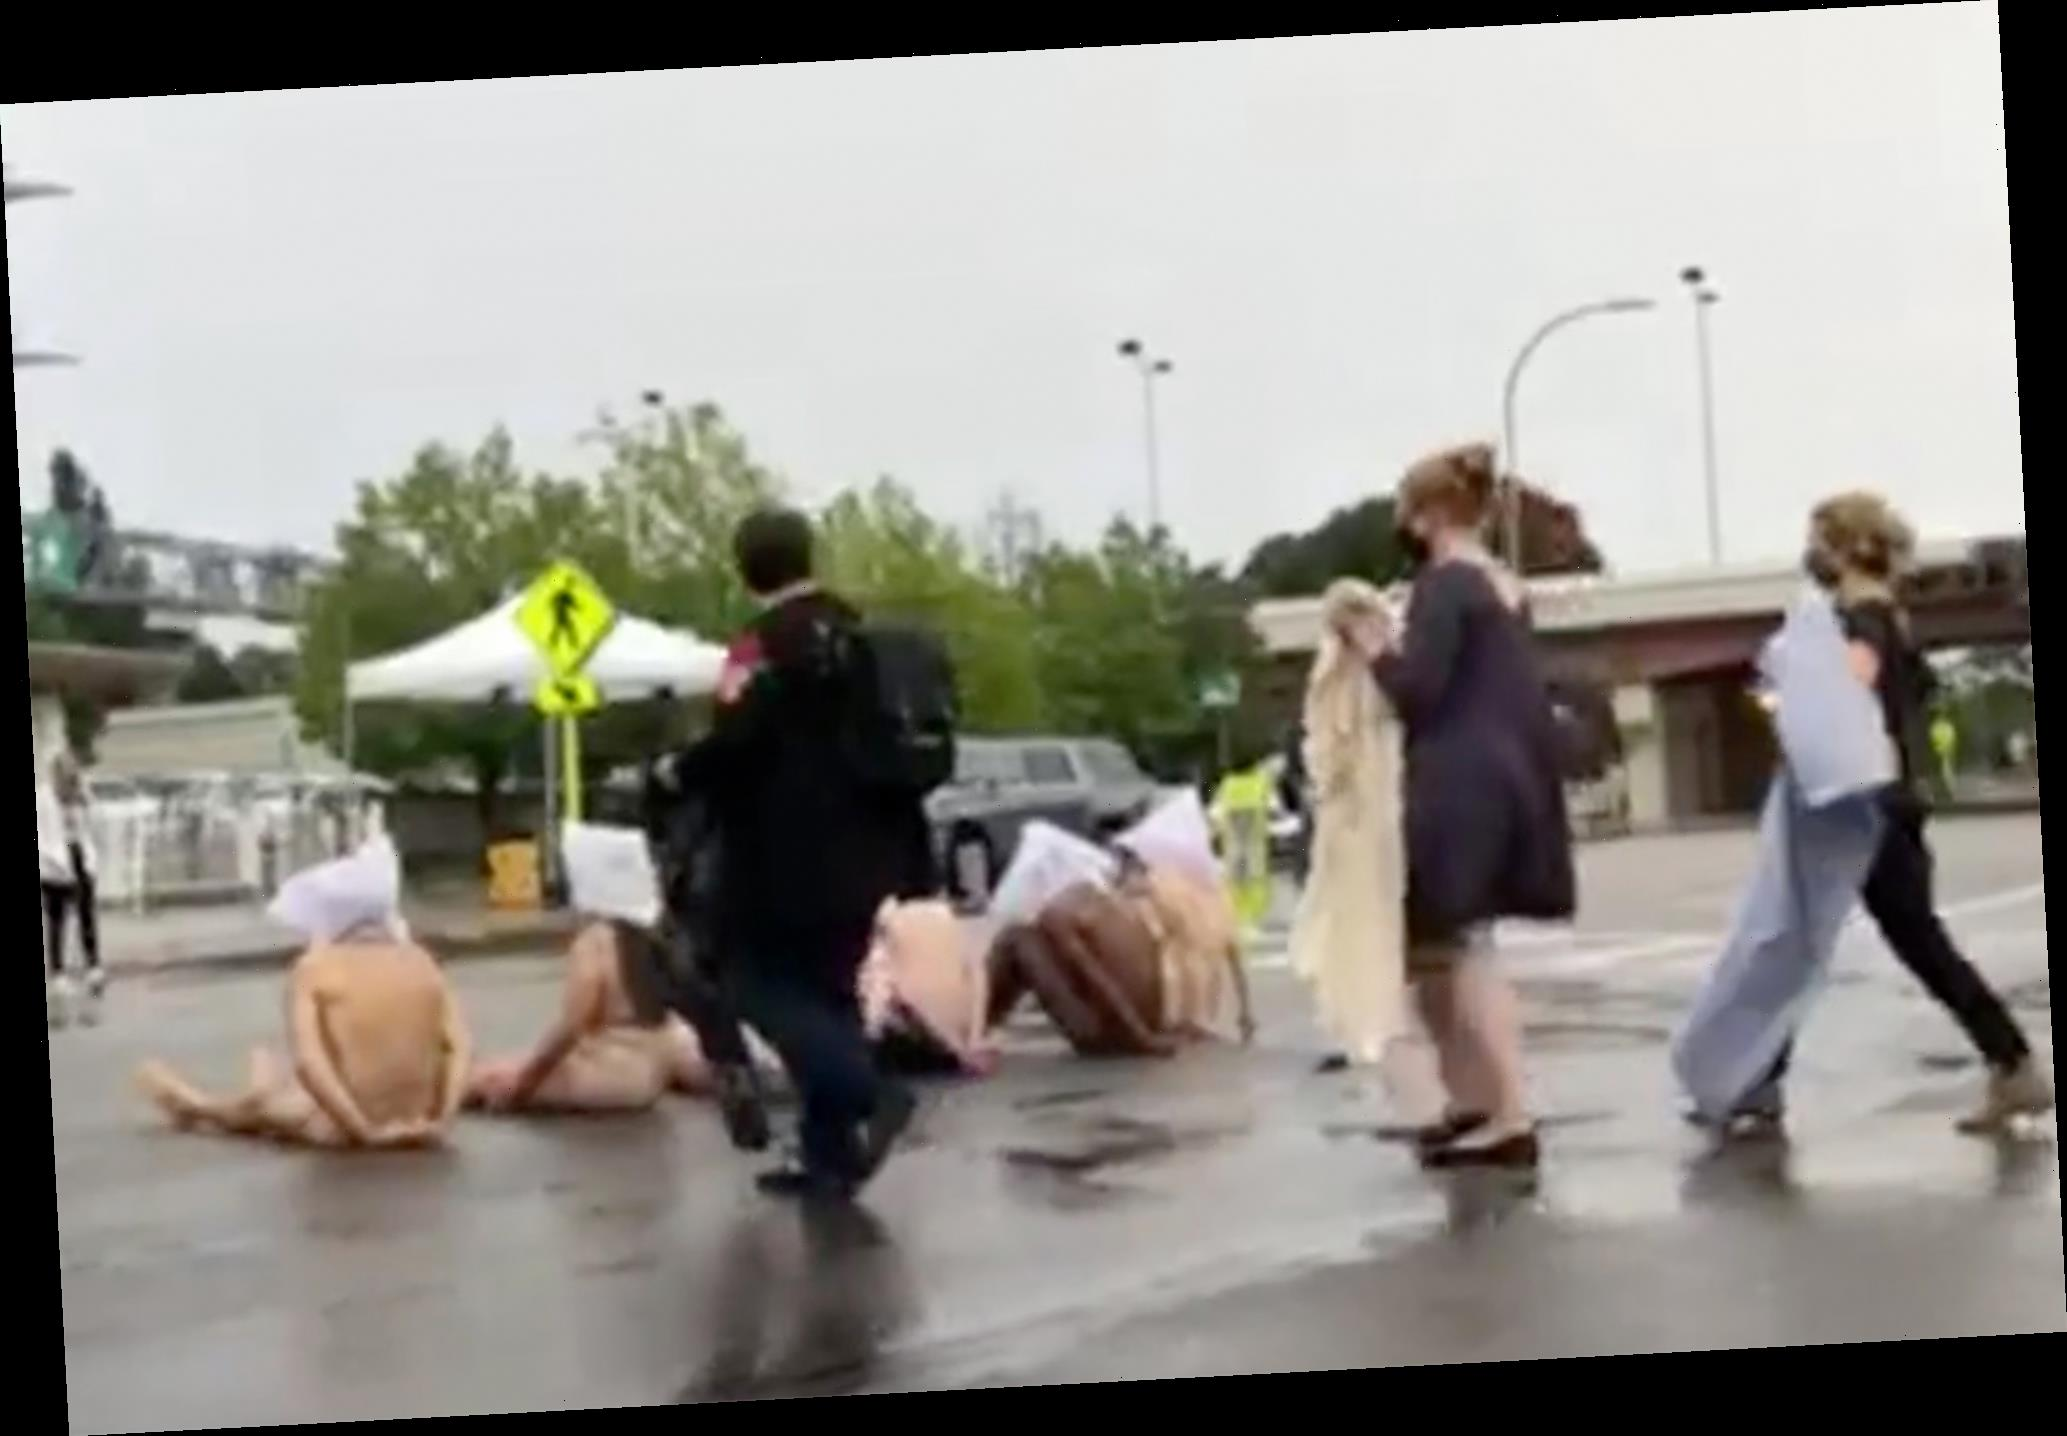 Naked demonstrators in spit hoods show up to Rochester protests over Daniel Prude